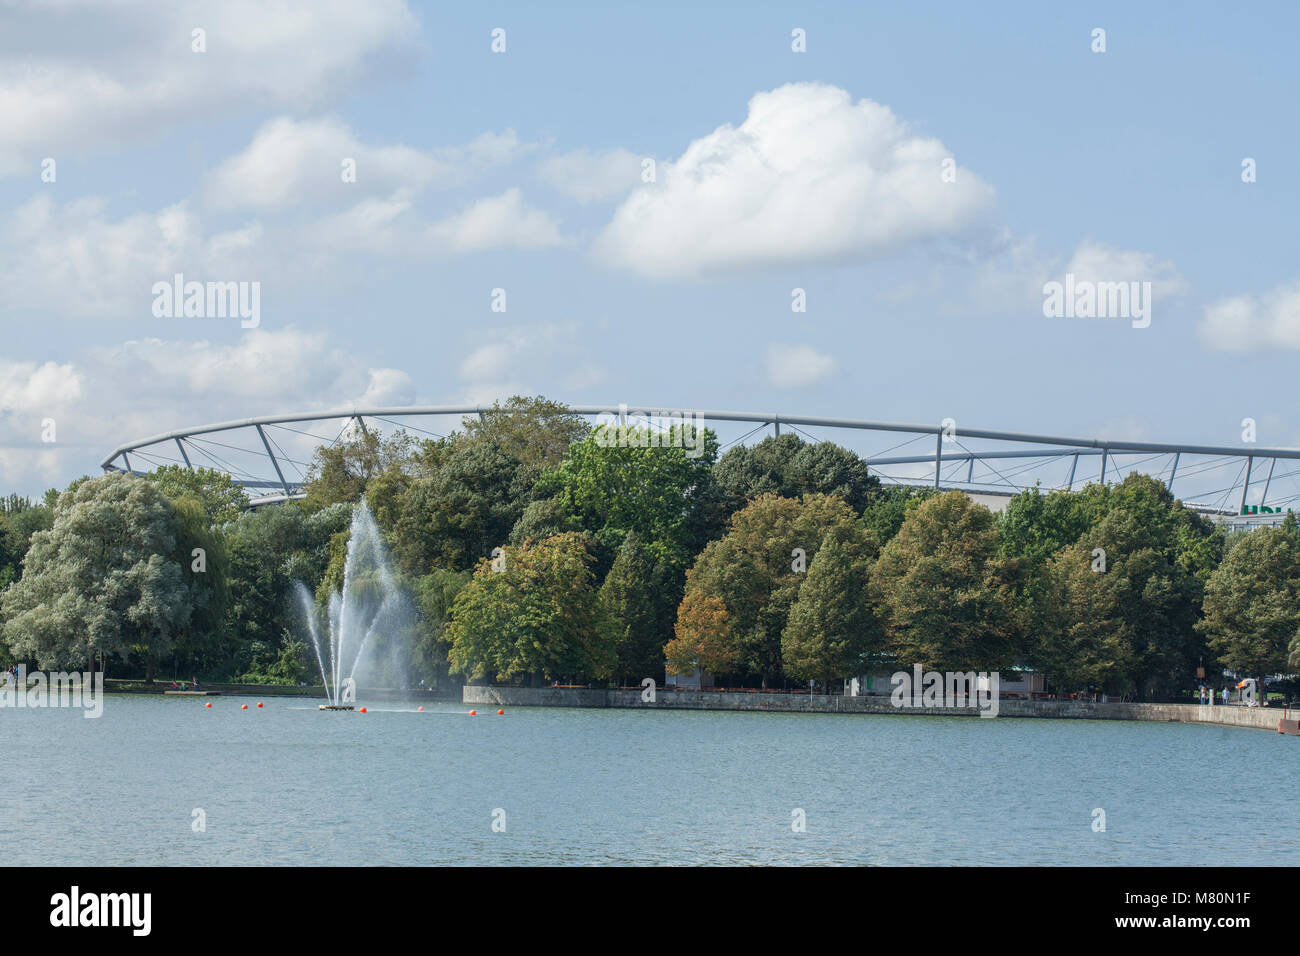 HDI Arena football stadium at  the Maschsee, Hannover, Lower Saxony, Germany, Europe  I Maschsee mit Fußballstadion - Stock Image